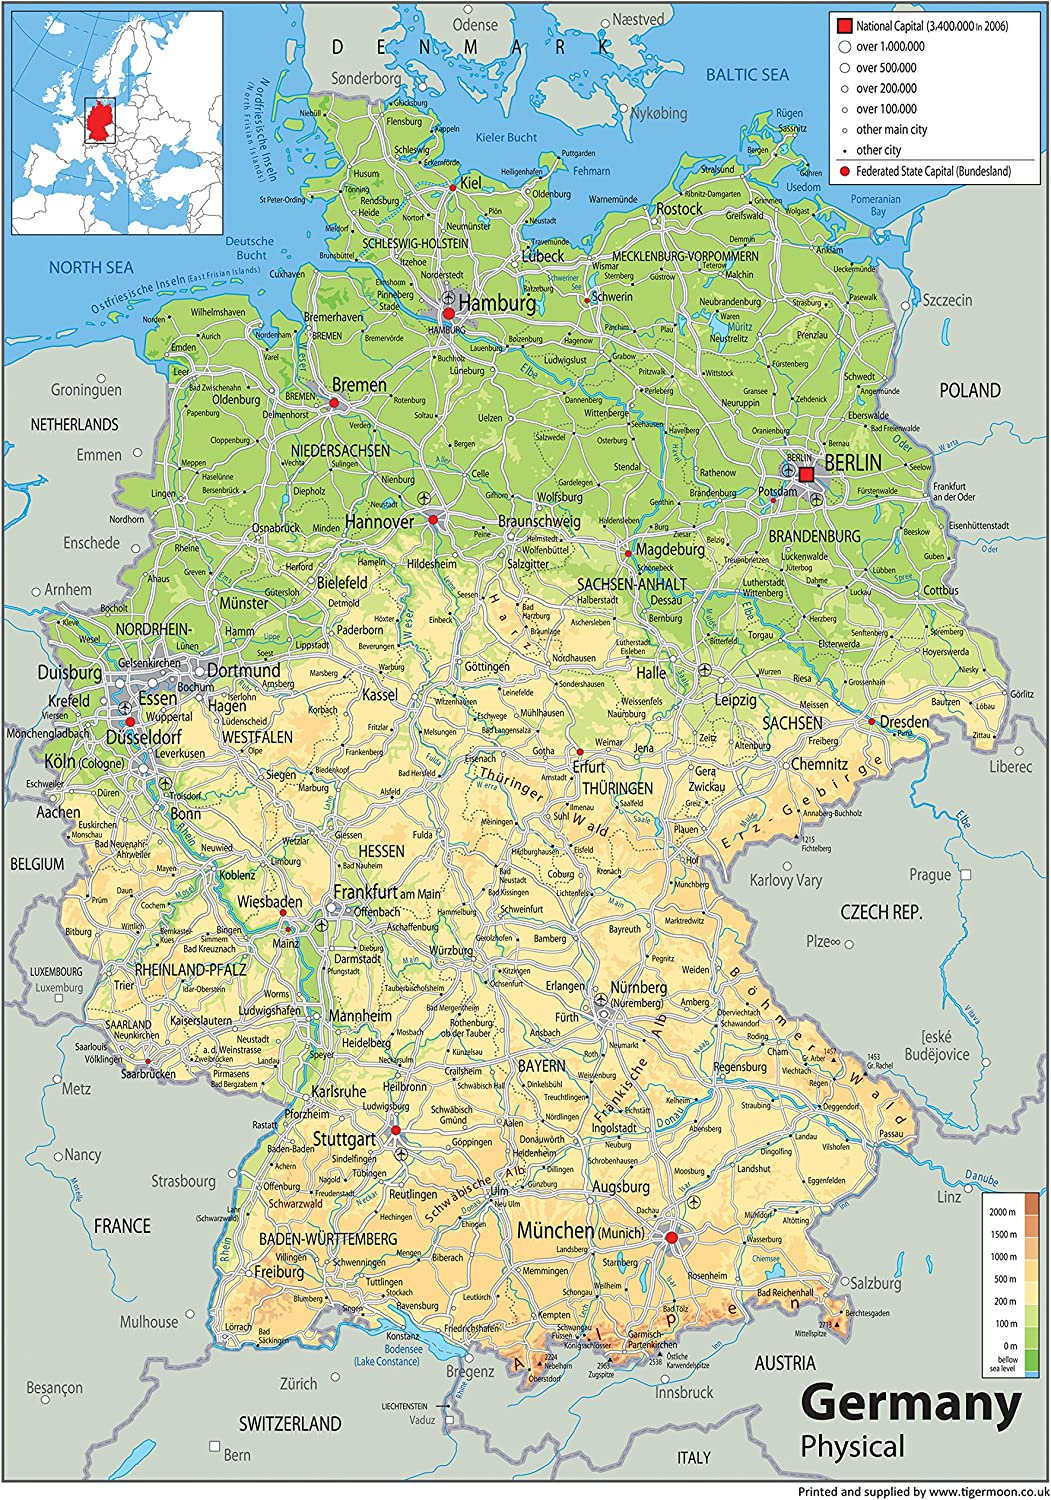 La Germania Cartina Politica.Germania Mappa Fisica Carta Plastificata A1 Misura 59 4 X 84 1 Cm Amazon It Cancelleria E Prodotti Per Ufficio